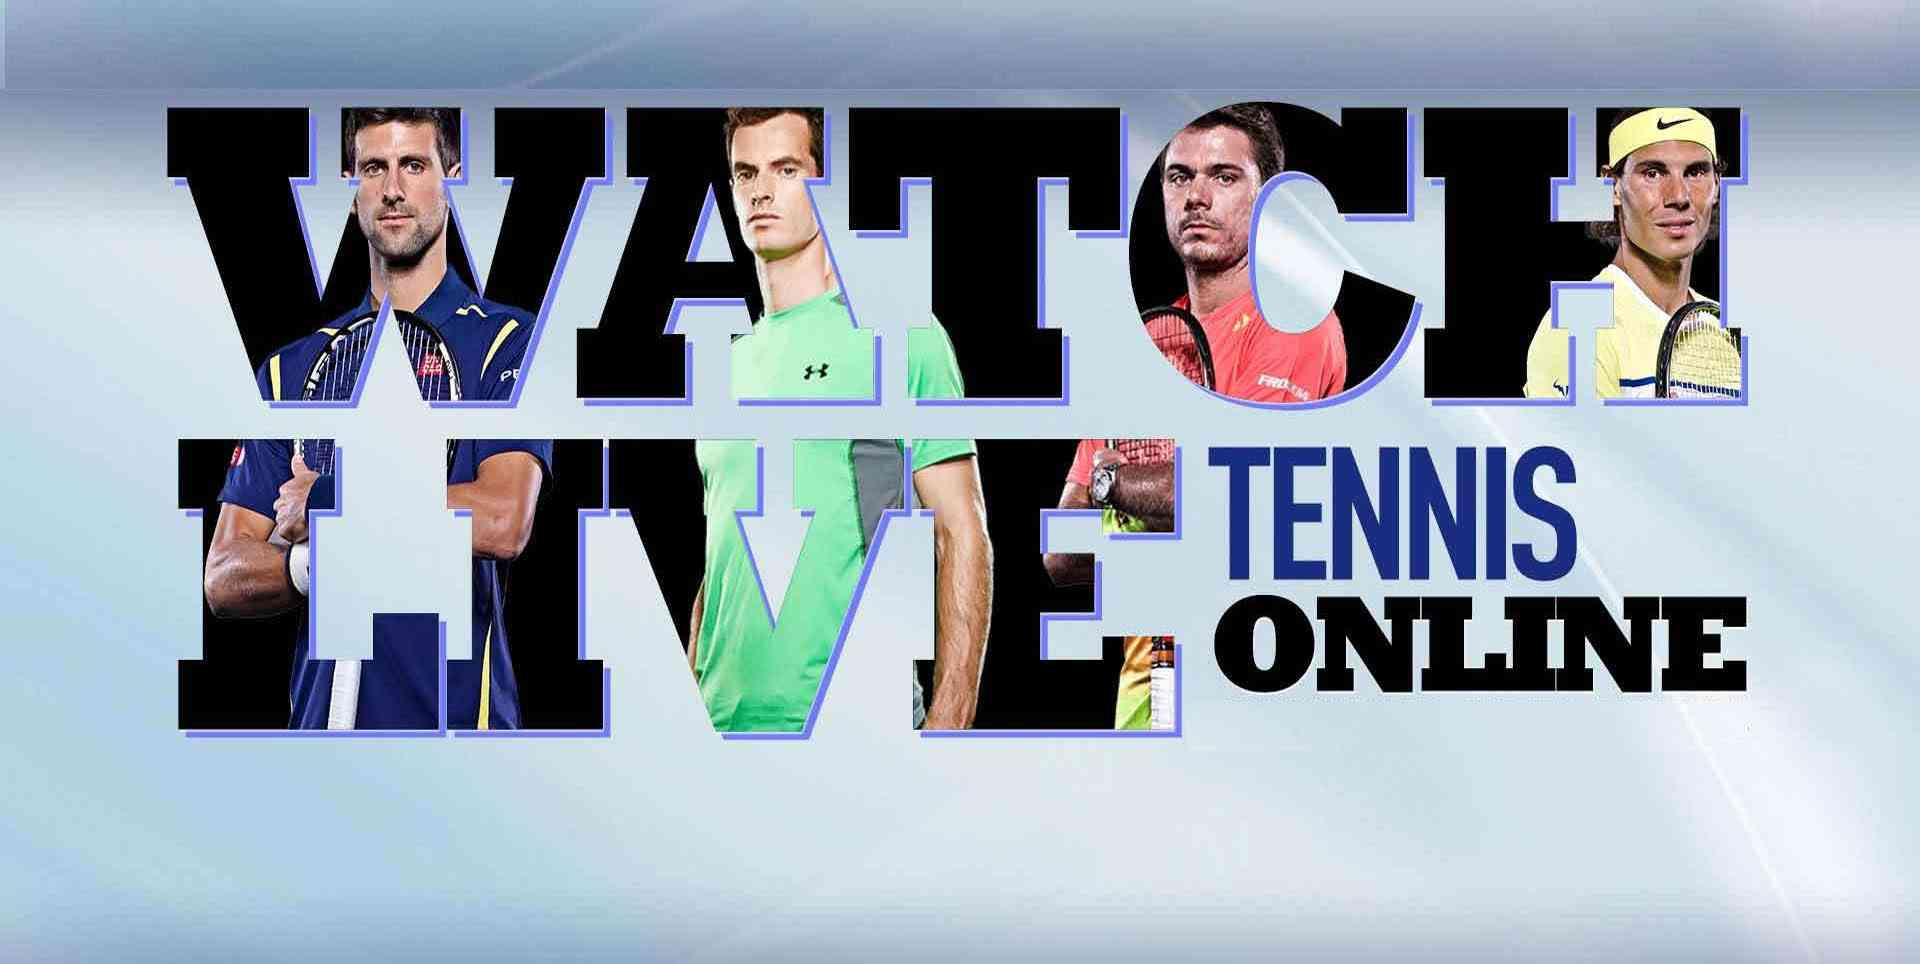 watch-v.-pospisil-|-j.-sock-vs-b.-bryan-|-m.-bryan-2014-final-online